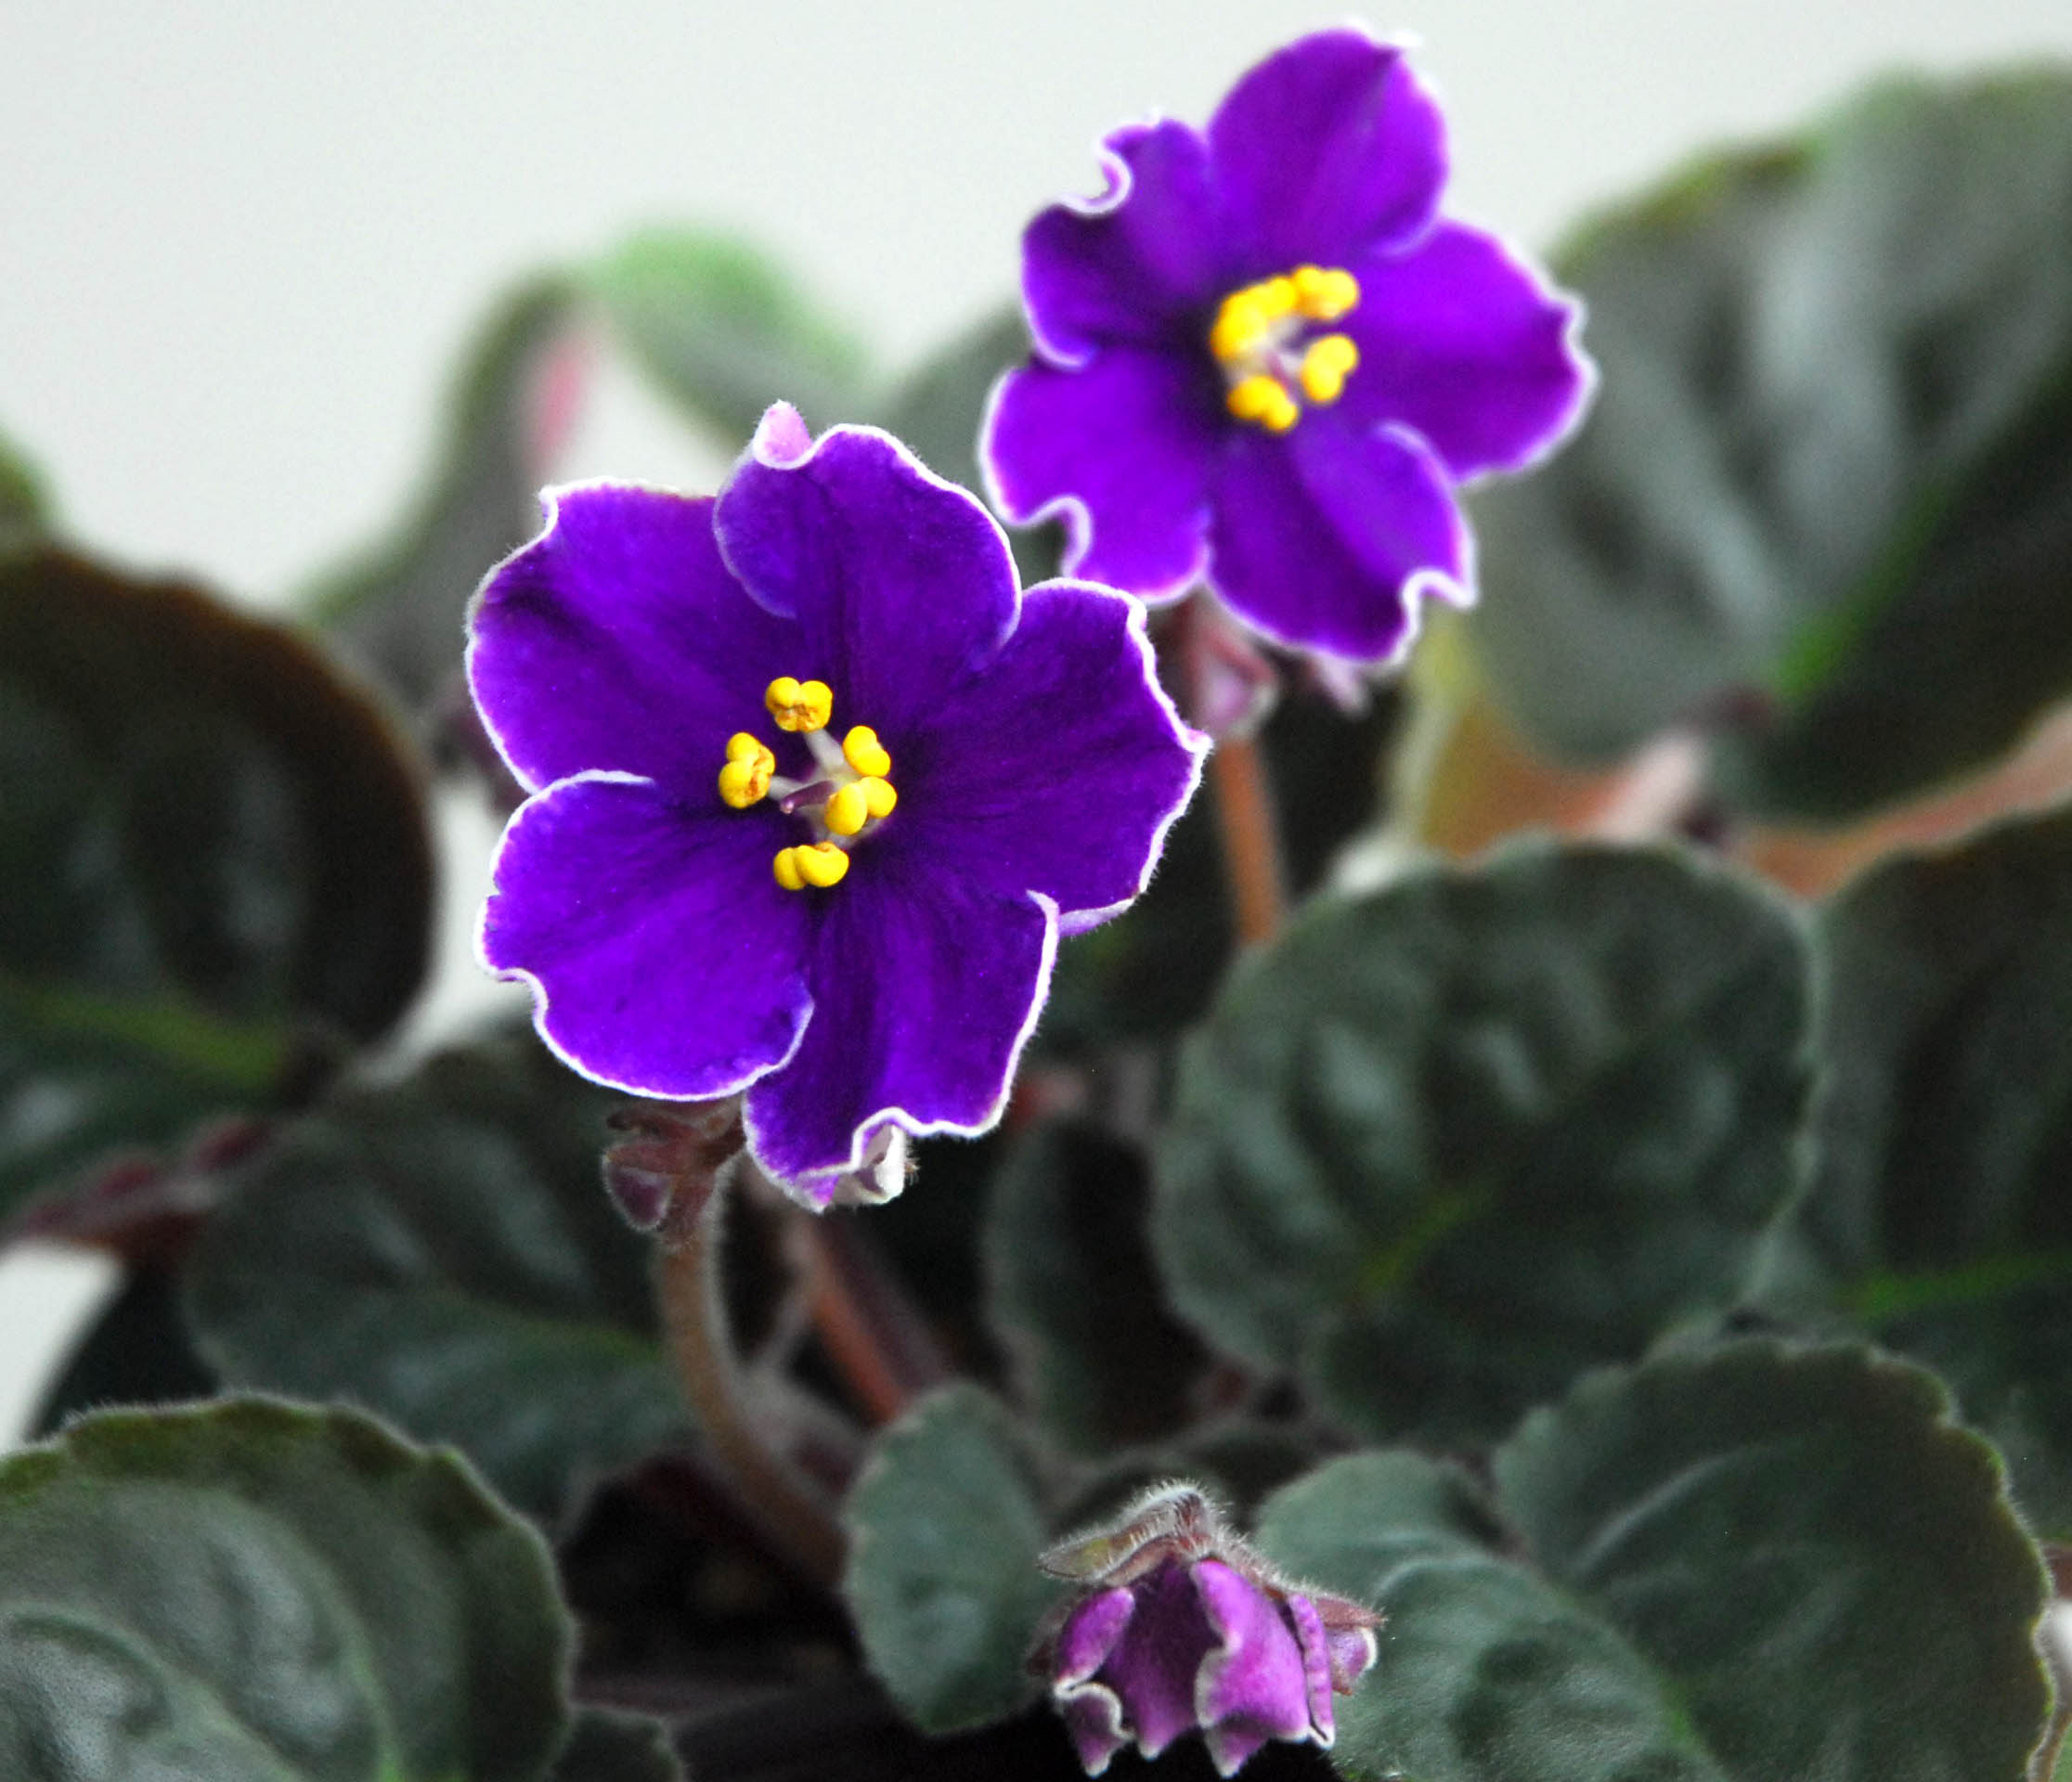 Optimara Hawaii Medium With Semi Double Bi Color Flowers Flowers Are Purple With A White Edge